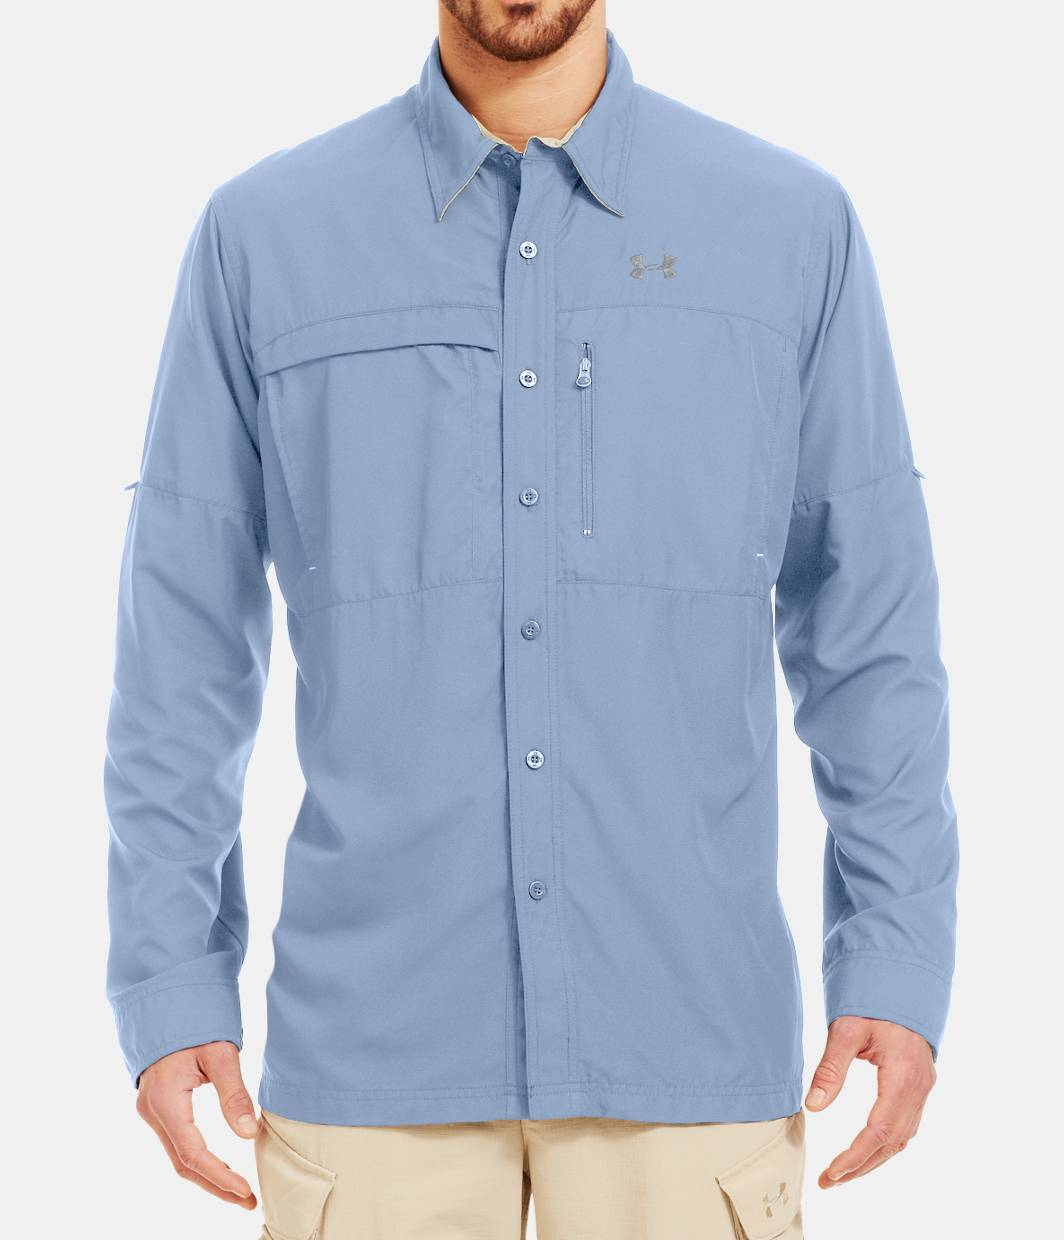 Men s flats guide long sleeve shirt under armour us for Under armour fishing shirts clearance